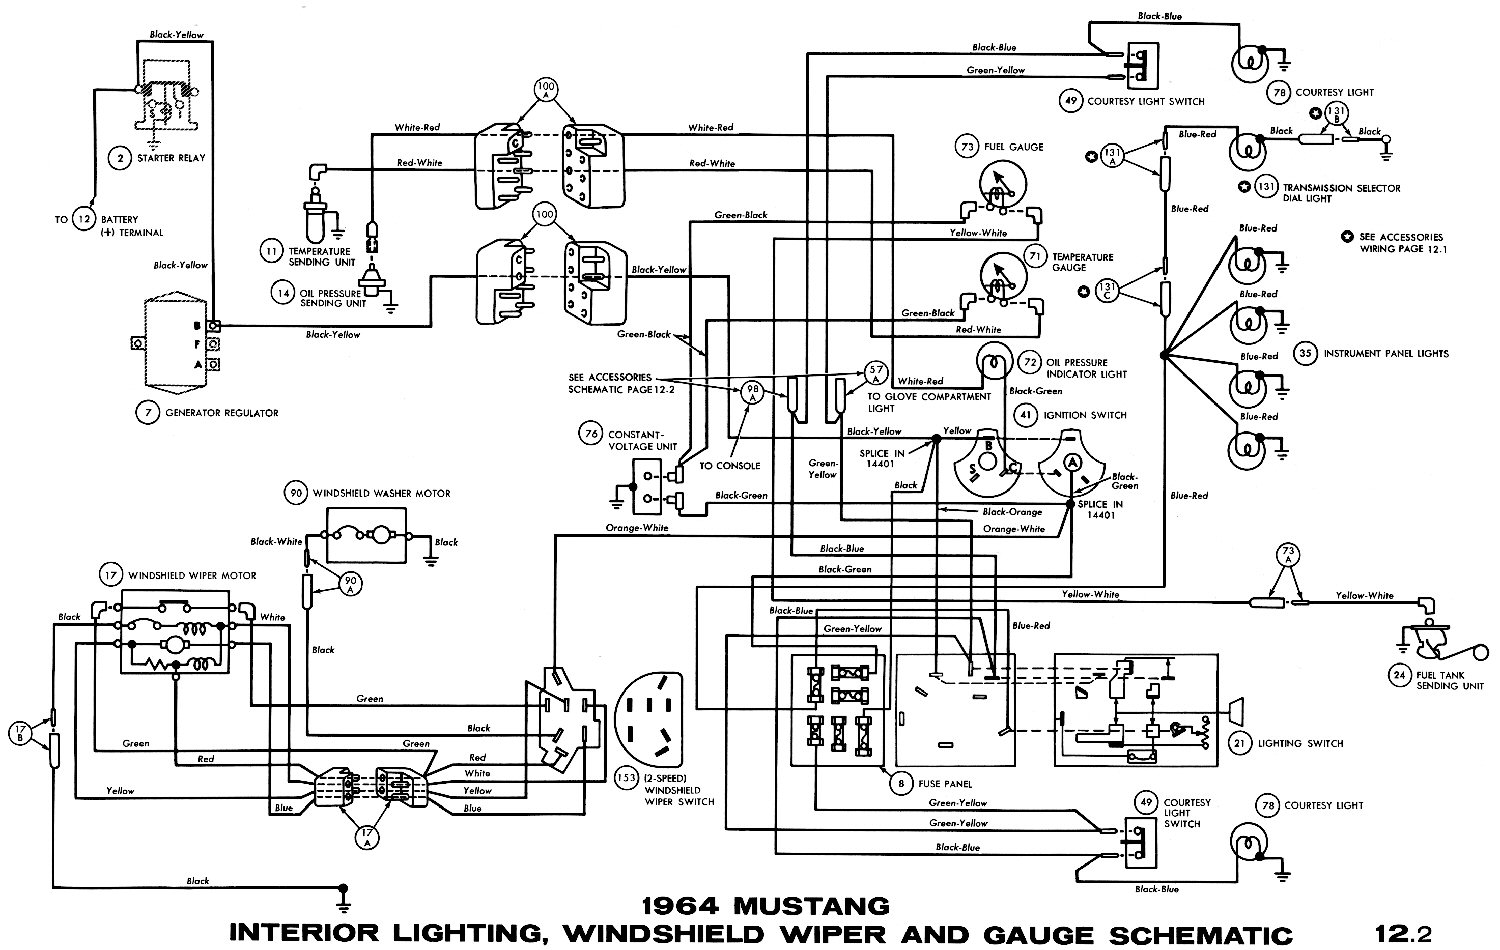 1964 Mustang Wiring Diagrams Average Joe Restoration 71 Corvette Wiper Motor Diagram Oil Pressure